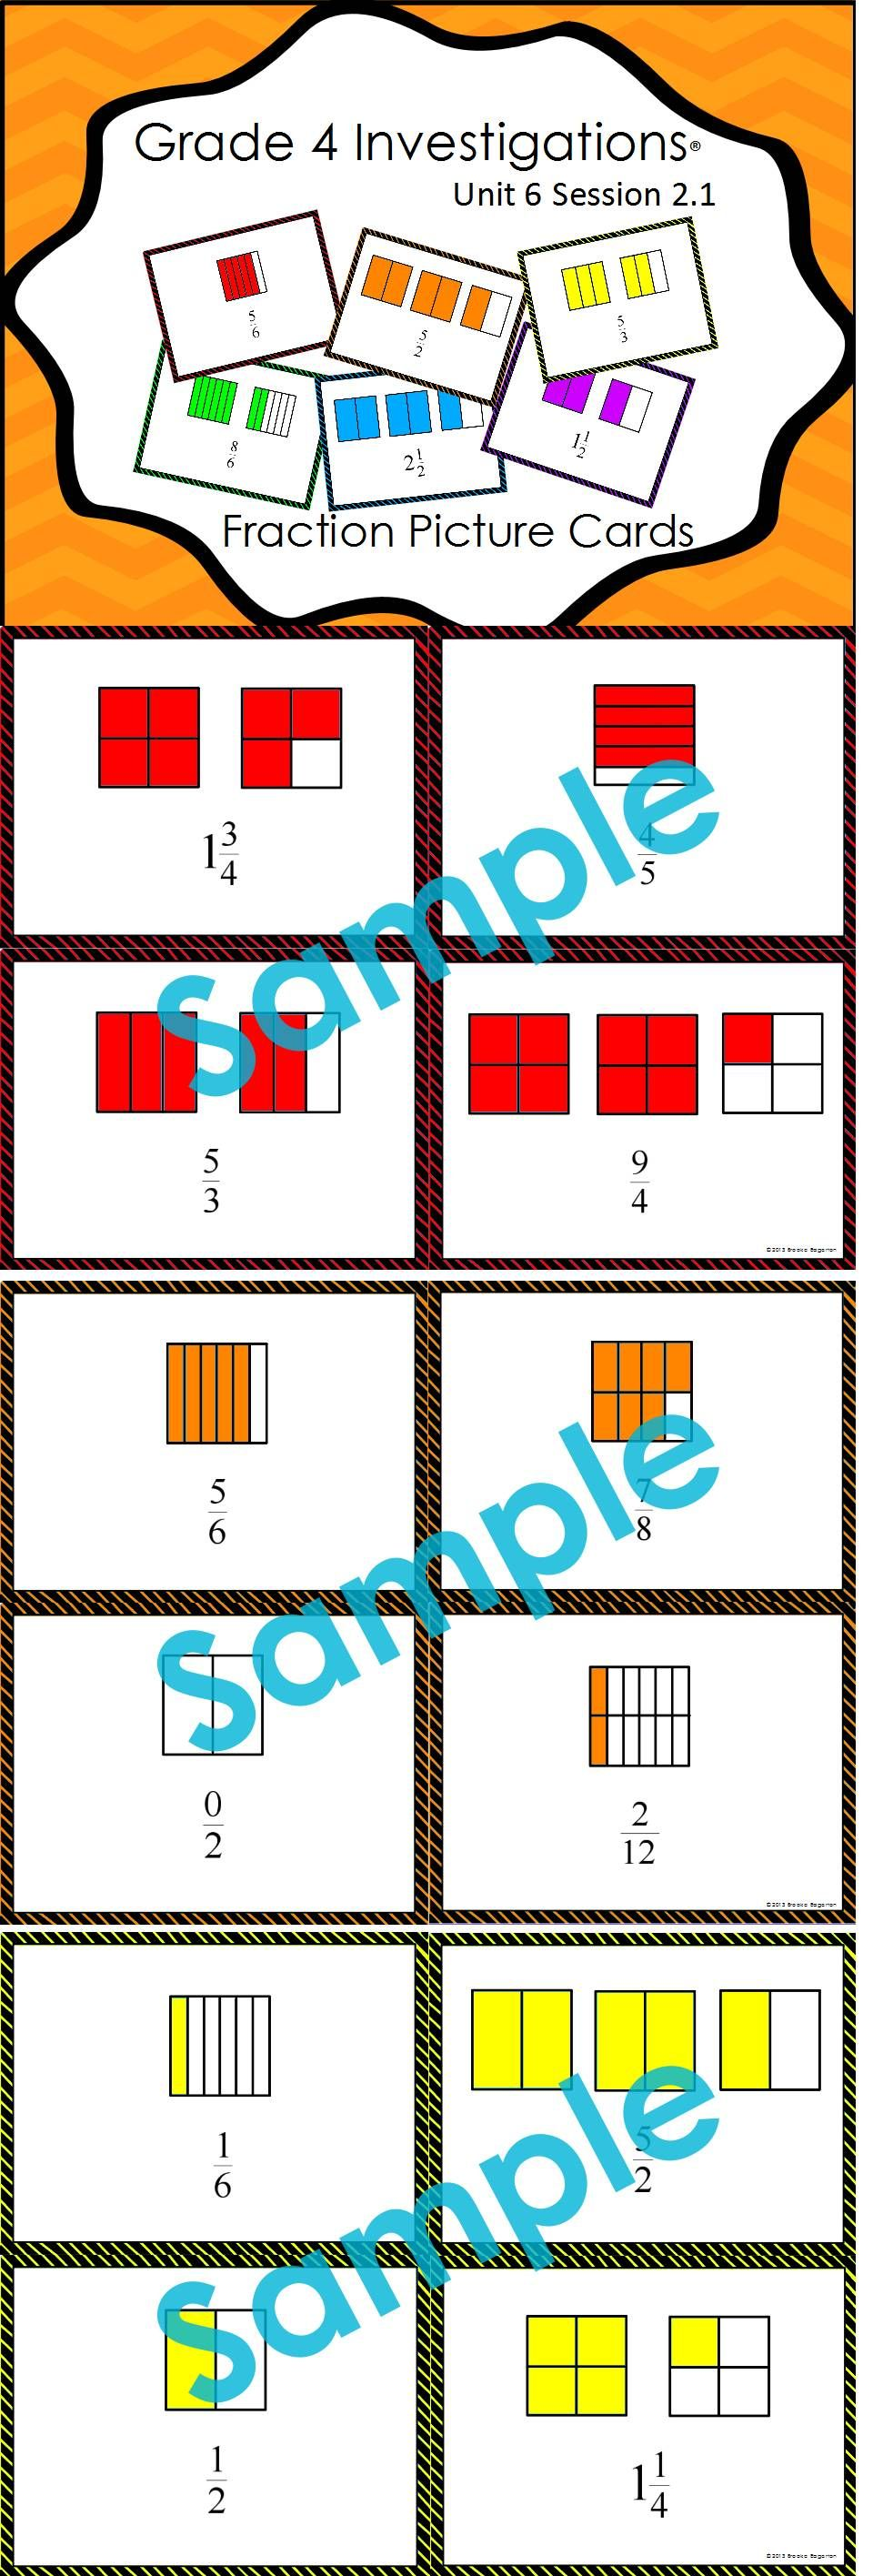 Forty Fraction Picture Cards Designed To Accompany Pearson S Grade 4 Investigations Unit 6 The Complete Set Is Availab Fractions Math Fractions Picture Cards [ 2832 x 960 Pixel ]